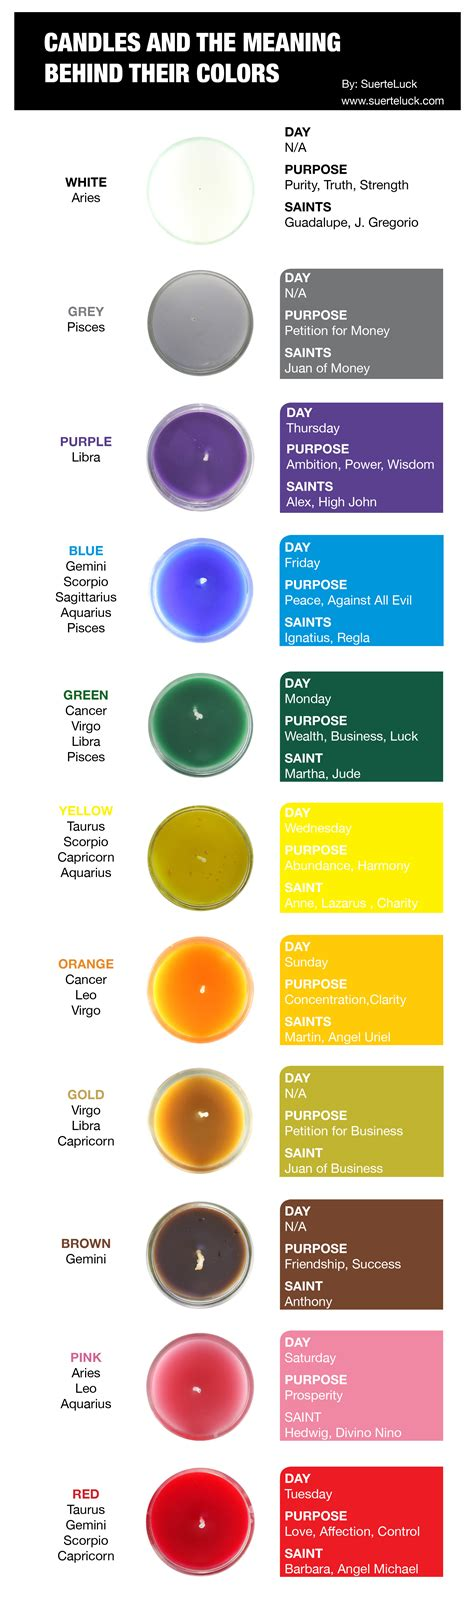 Candele Color by Prayer Candles And The Meaning Their Colors